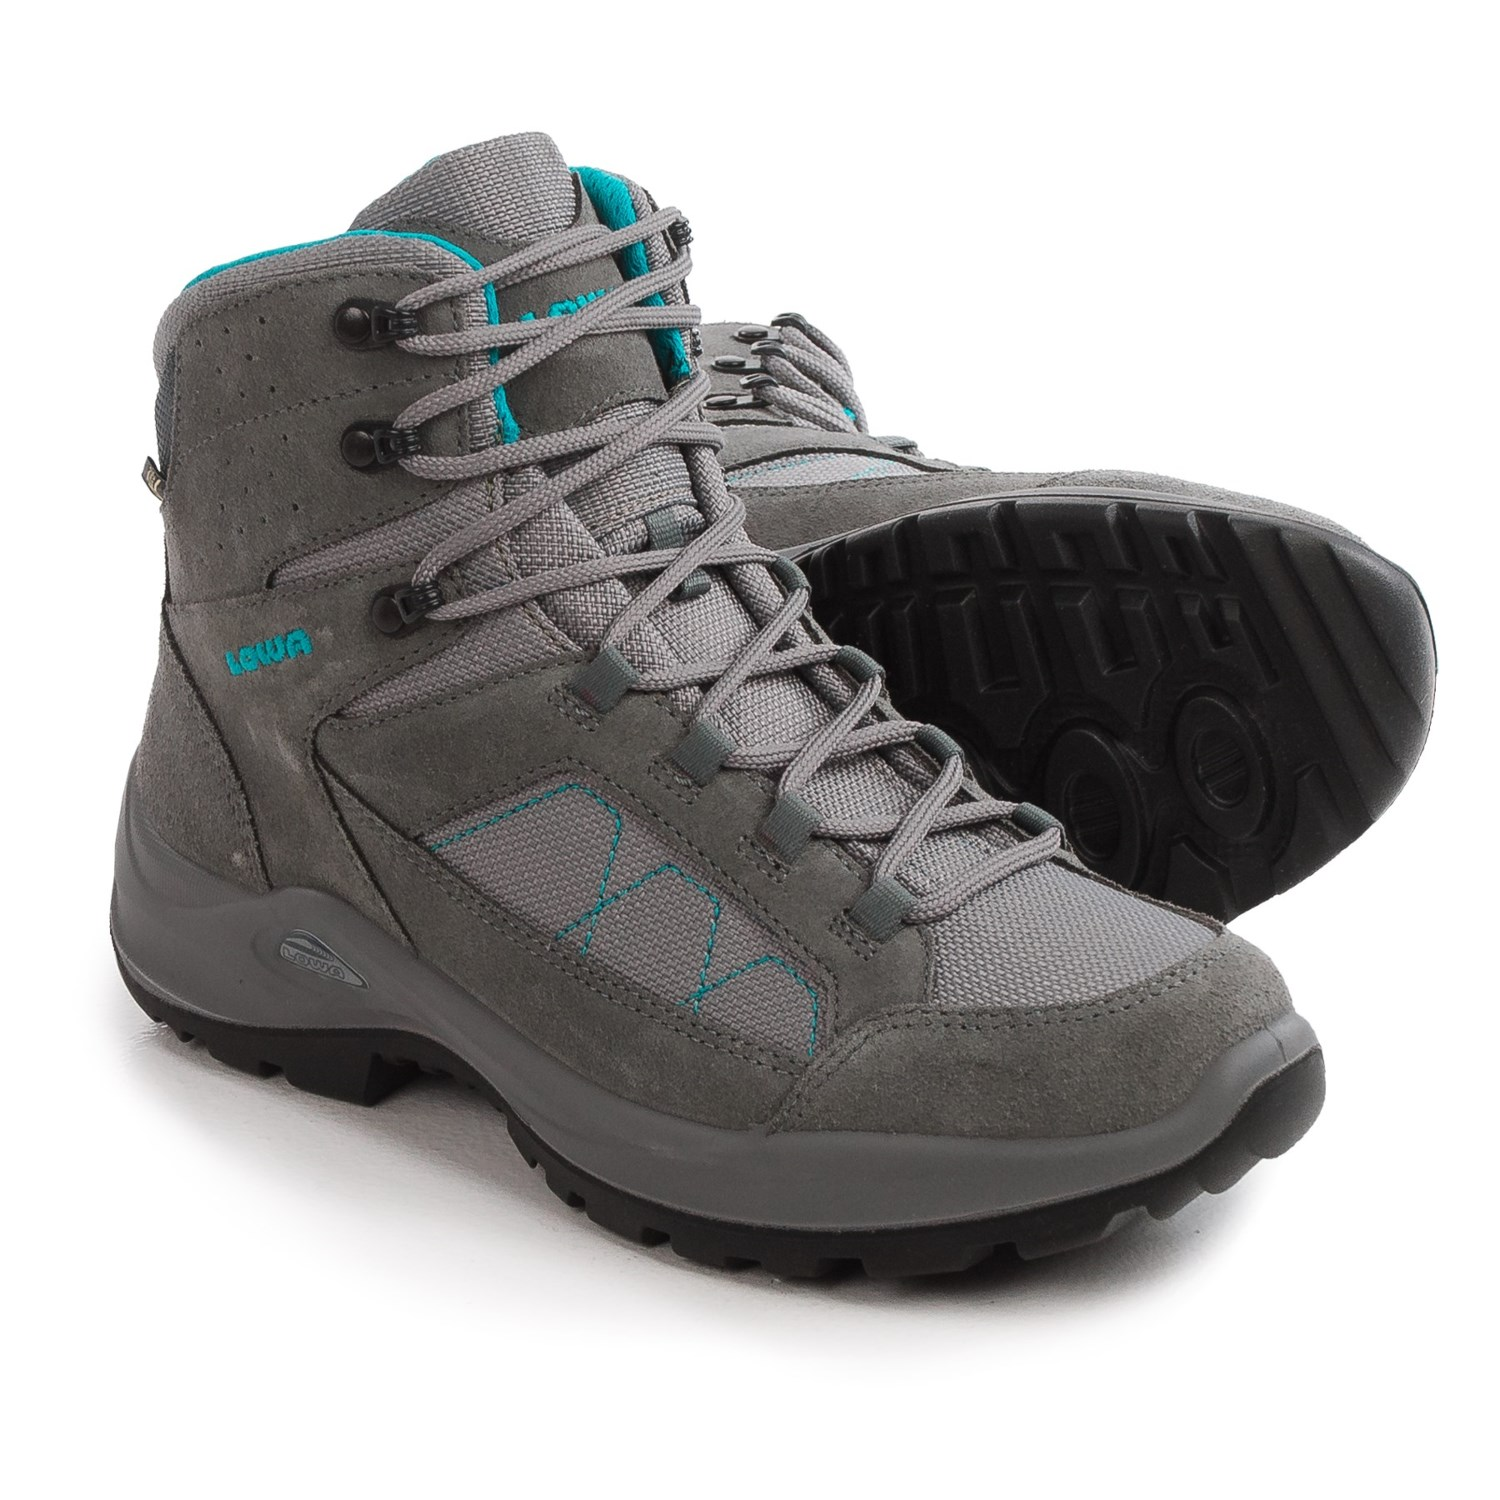 Lowa Toledo Gore Tex 174 Hiking Boots For Women Save 42